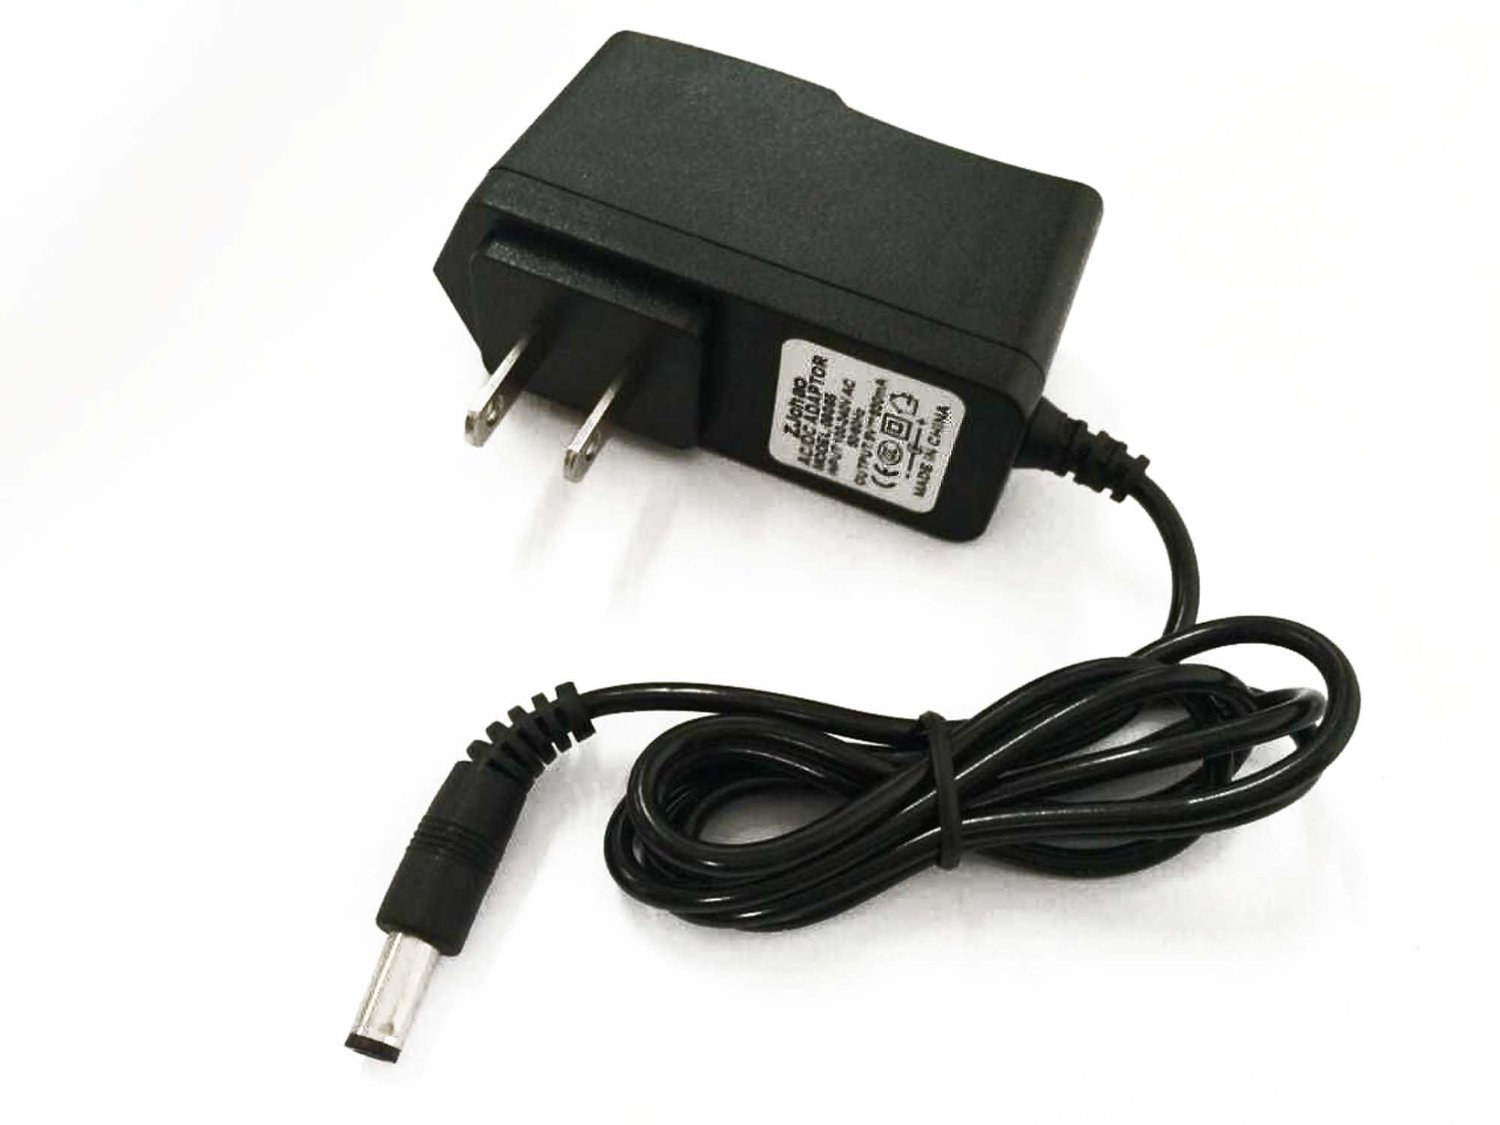 Wall Adapter Power Supply 9v Dc 650ma Electronics Regulated Battery Eliminator Circuit Electronic Projects